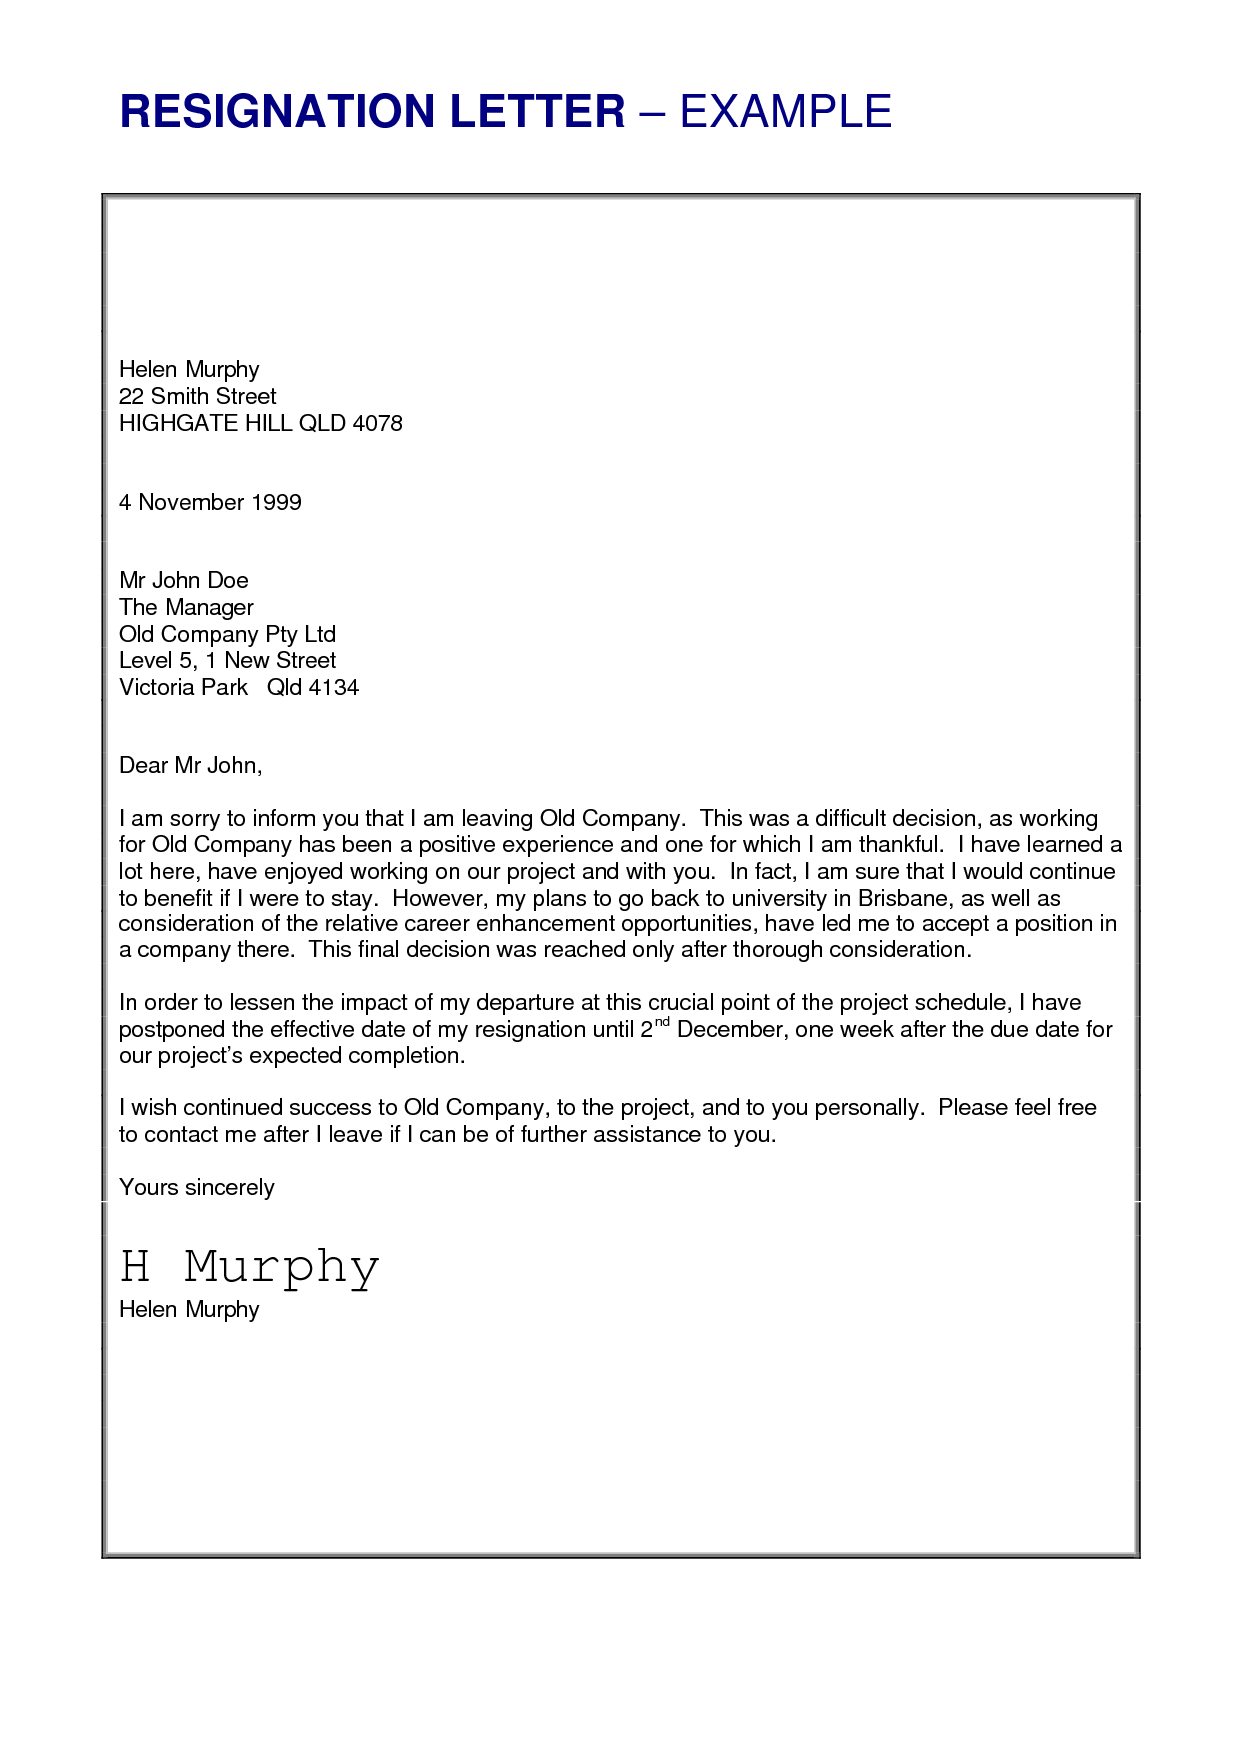 Job Resignation Letter Sample Loganun Blog